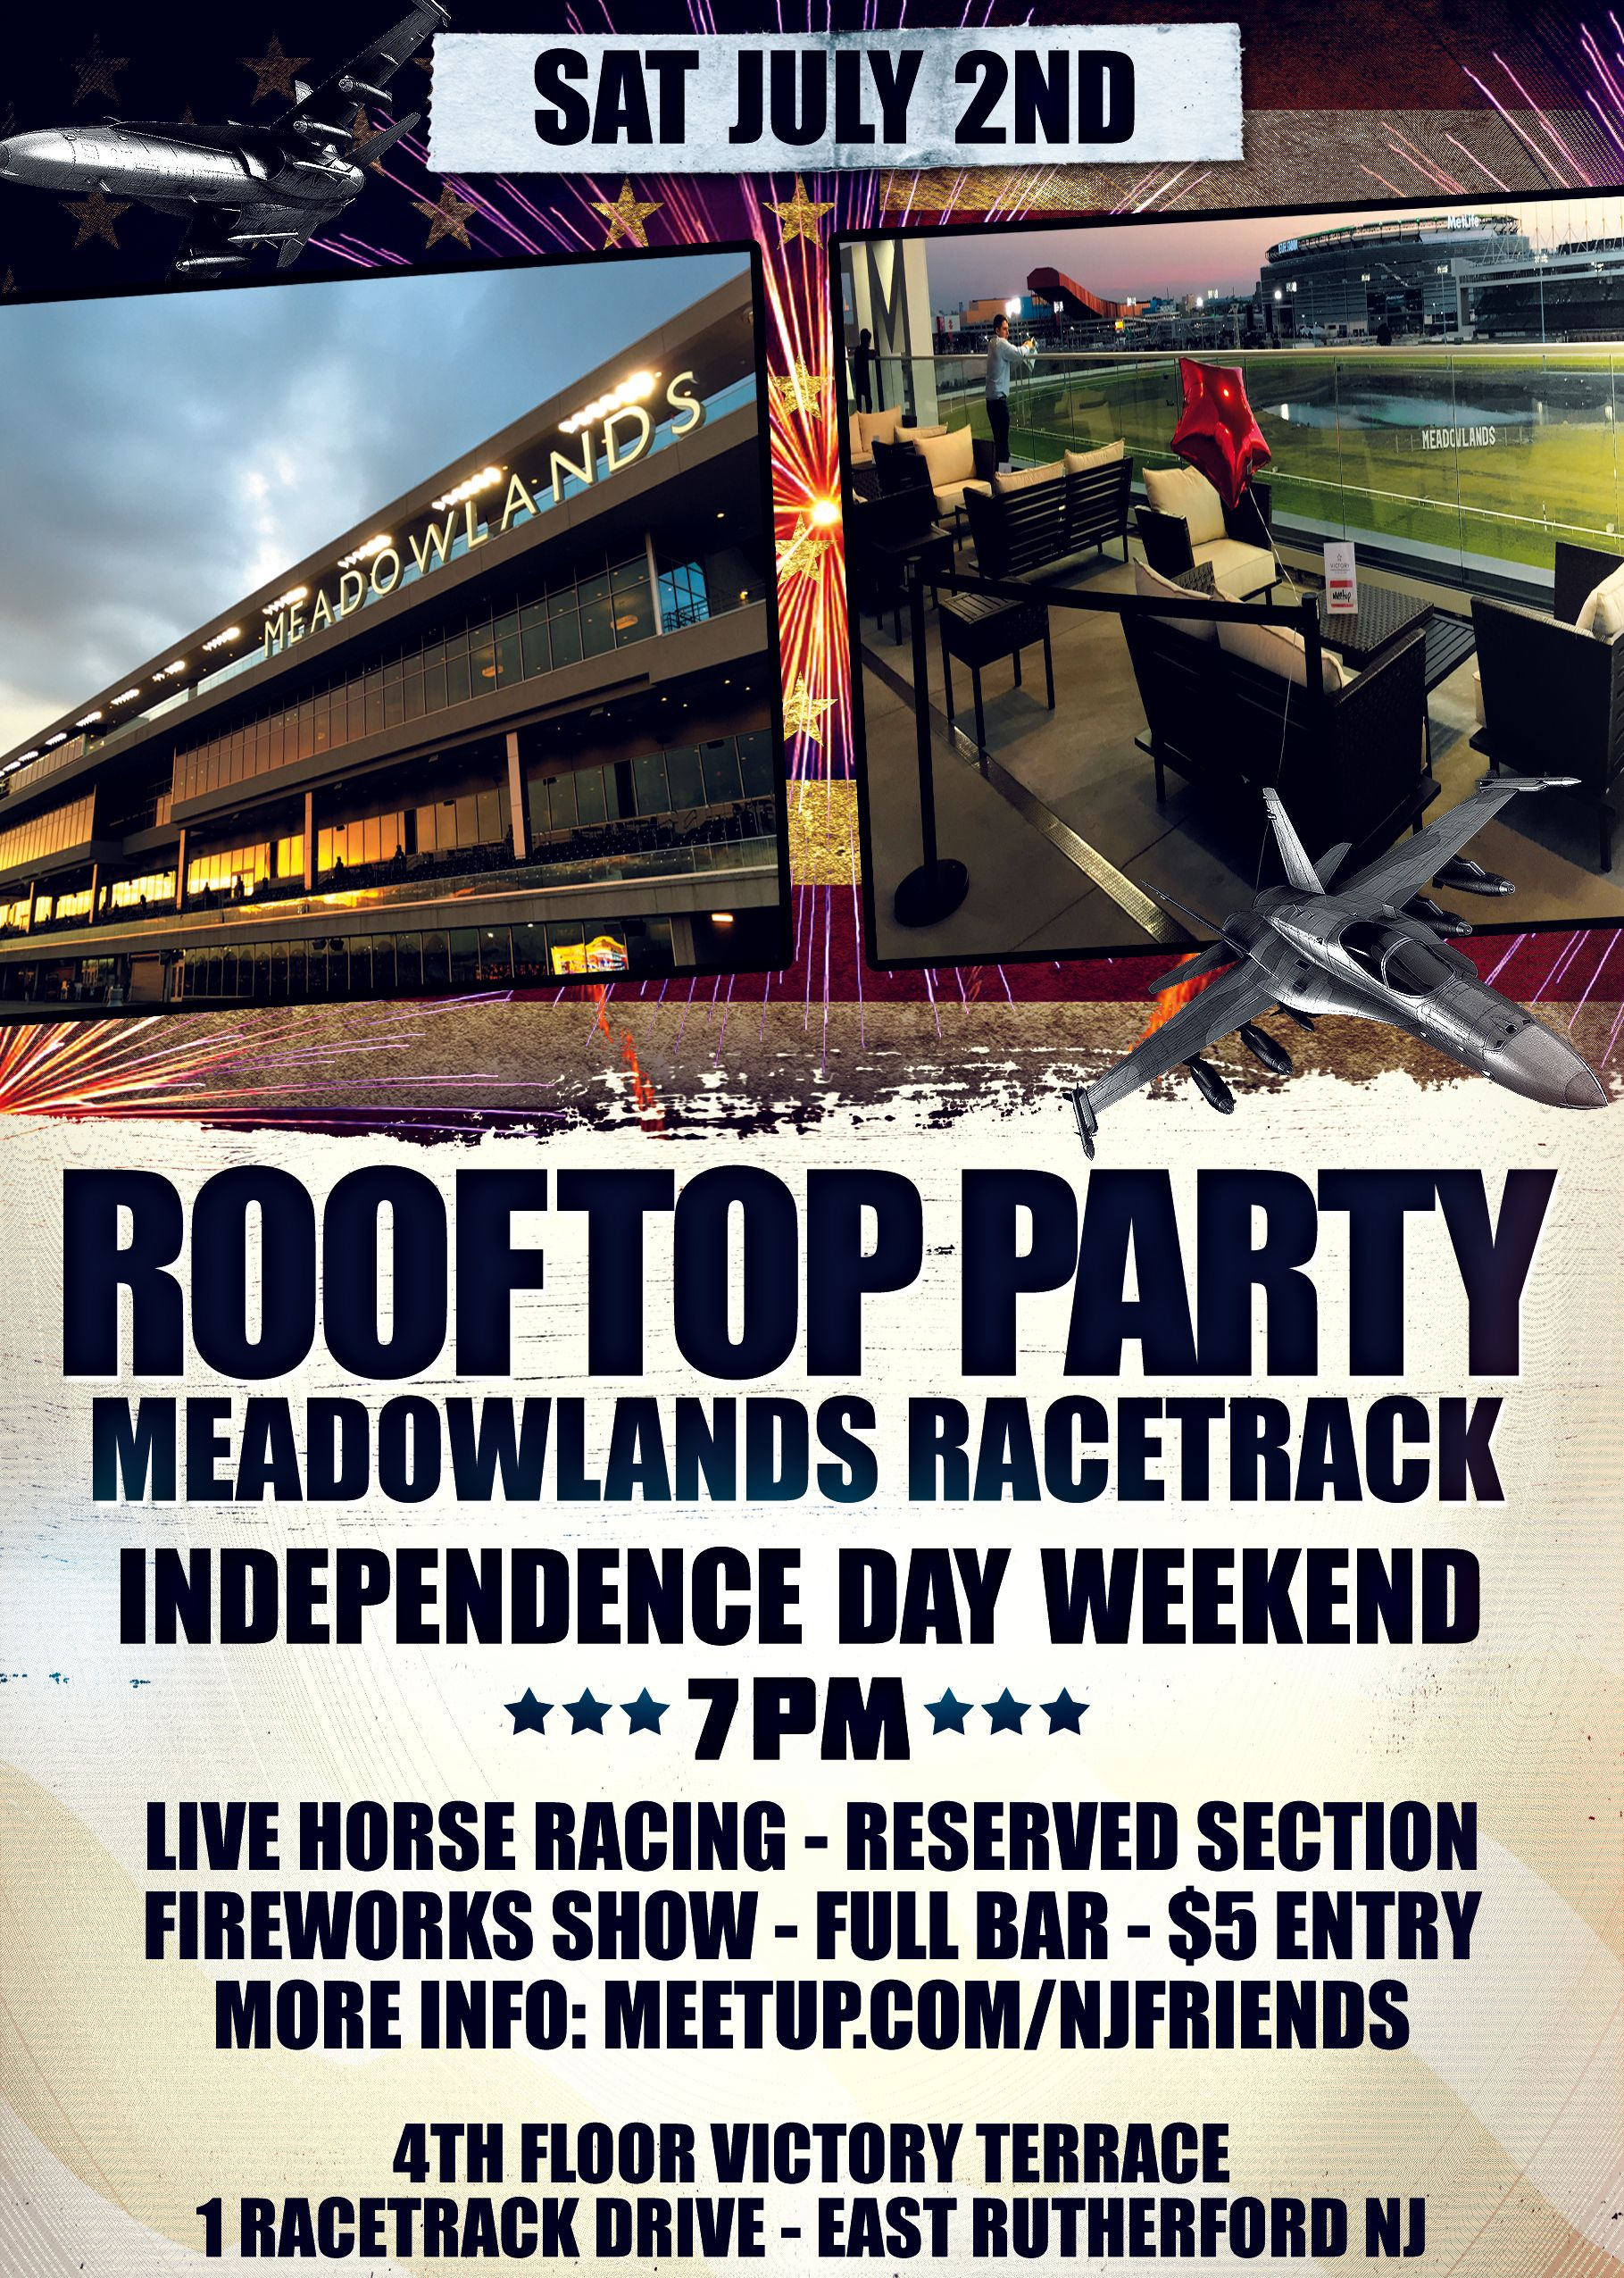 meadowlands latin singles $10 for one ticket for single-day general admission (up to $2209 value) $18 for two tickets for single-day general admission (up to $4418 value) click to view the schedule.